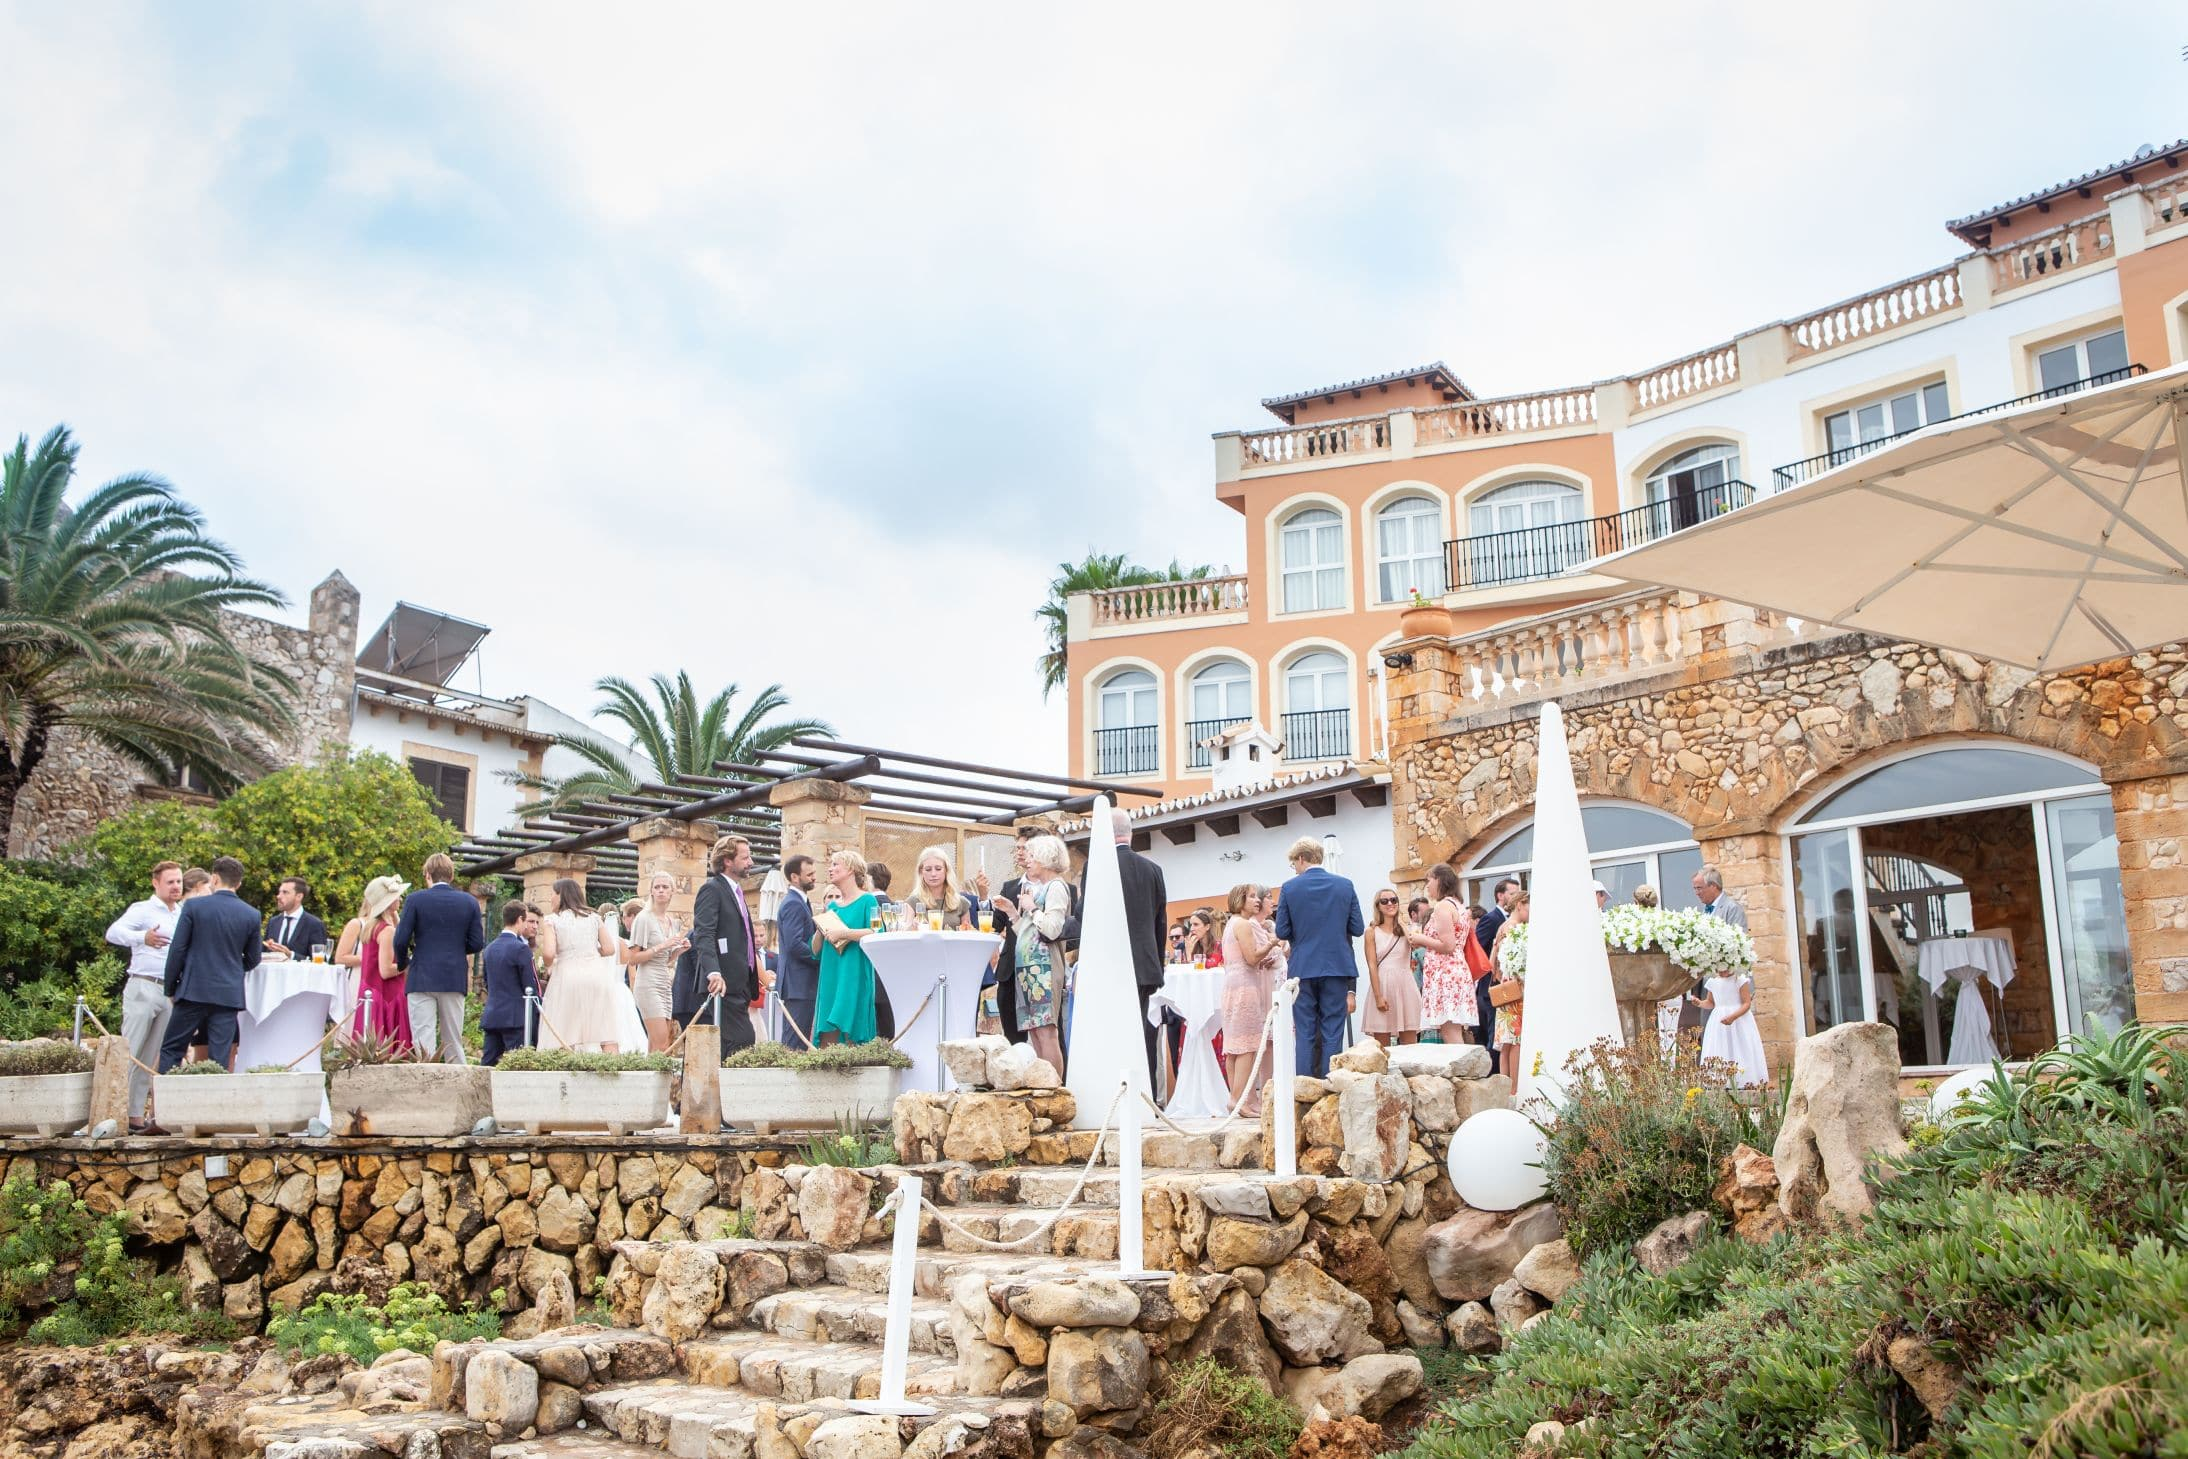 Million Memories_S&J_Hochzeitsfotograf_Mallorca_Spain_Wedding_Spanien Hochzeit_Balearen_Balearic islands_079